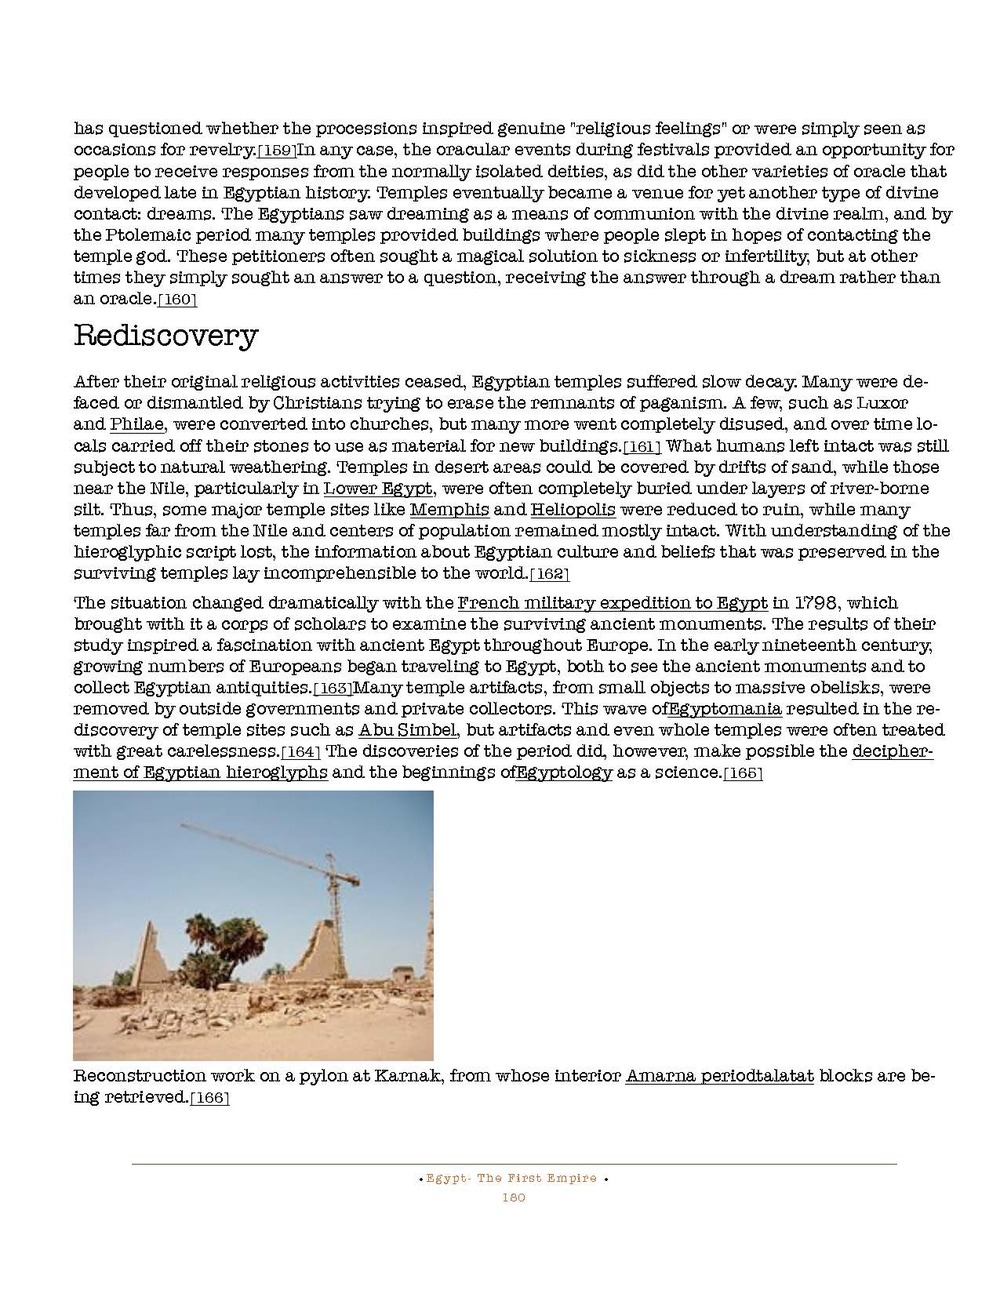 HOCE- Egypt  (First Empire) Notes_Page_180.jpg